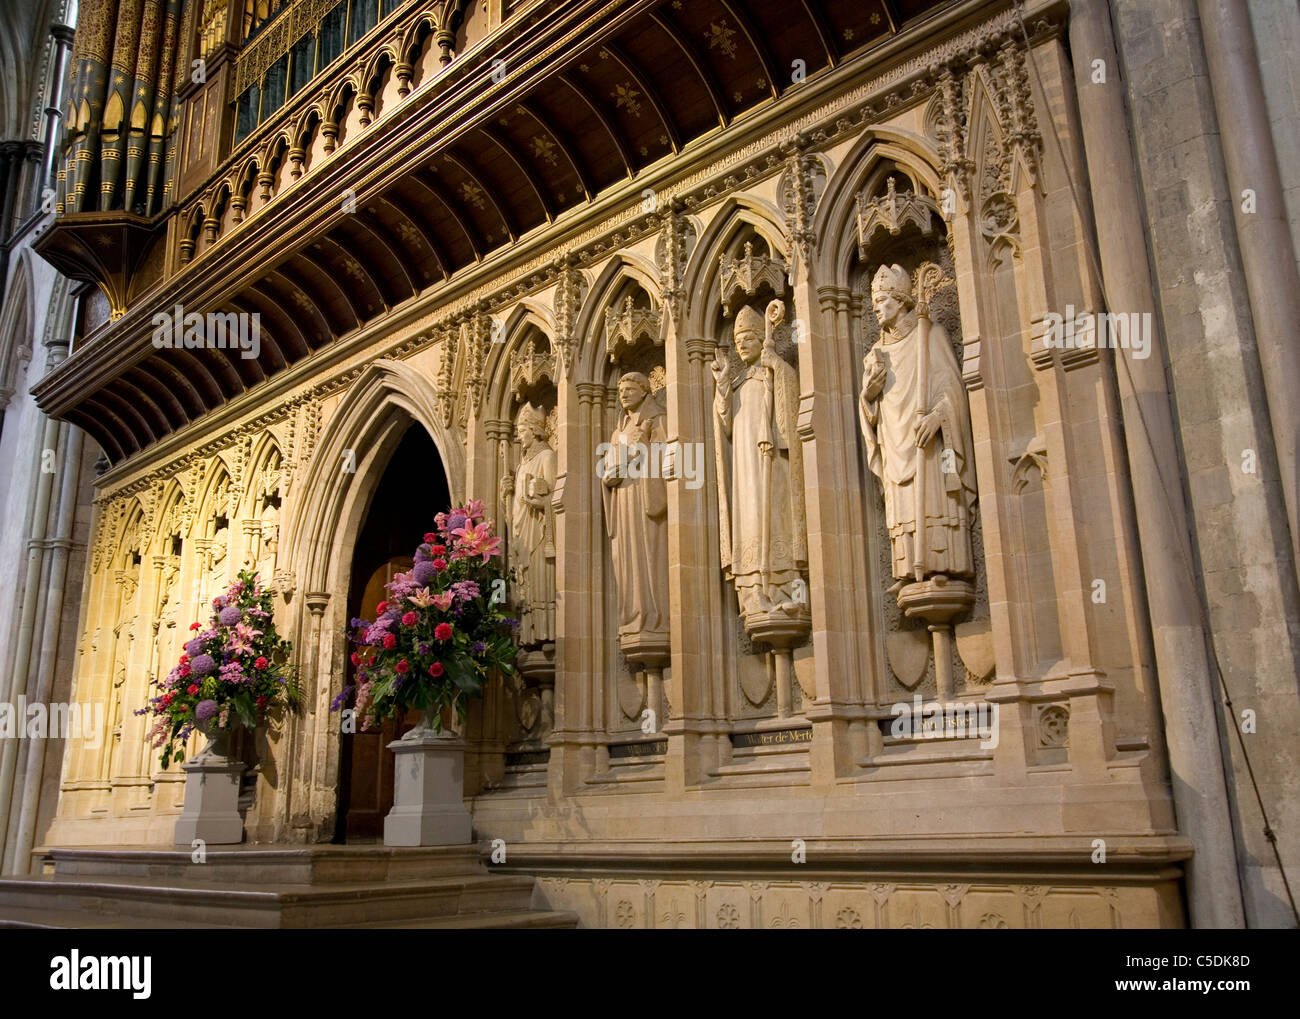 Rochester Cathedral Statues - Stock Image